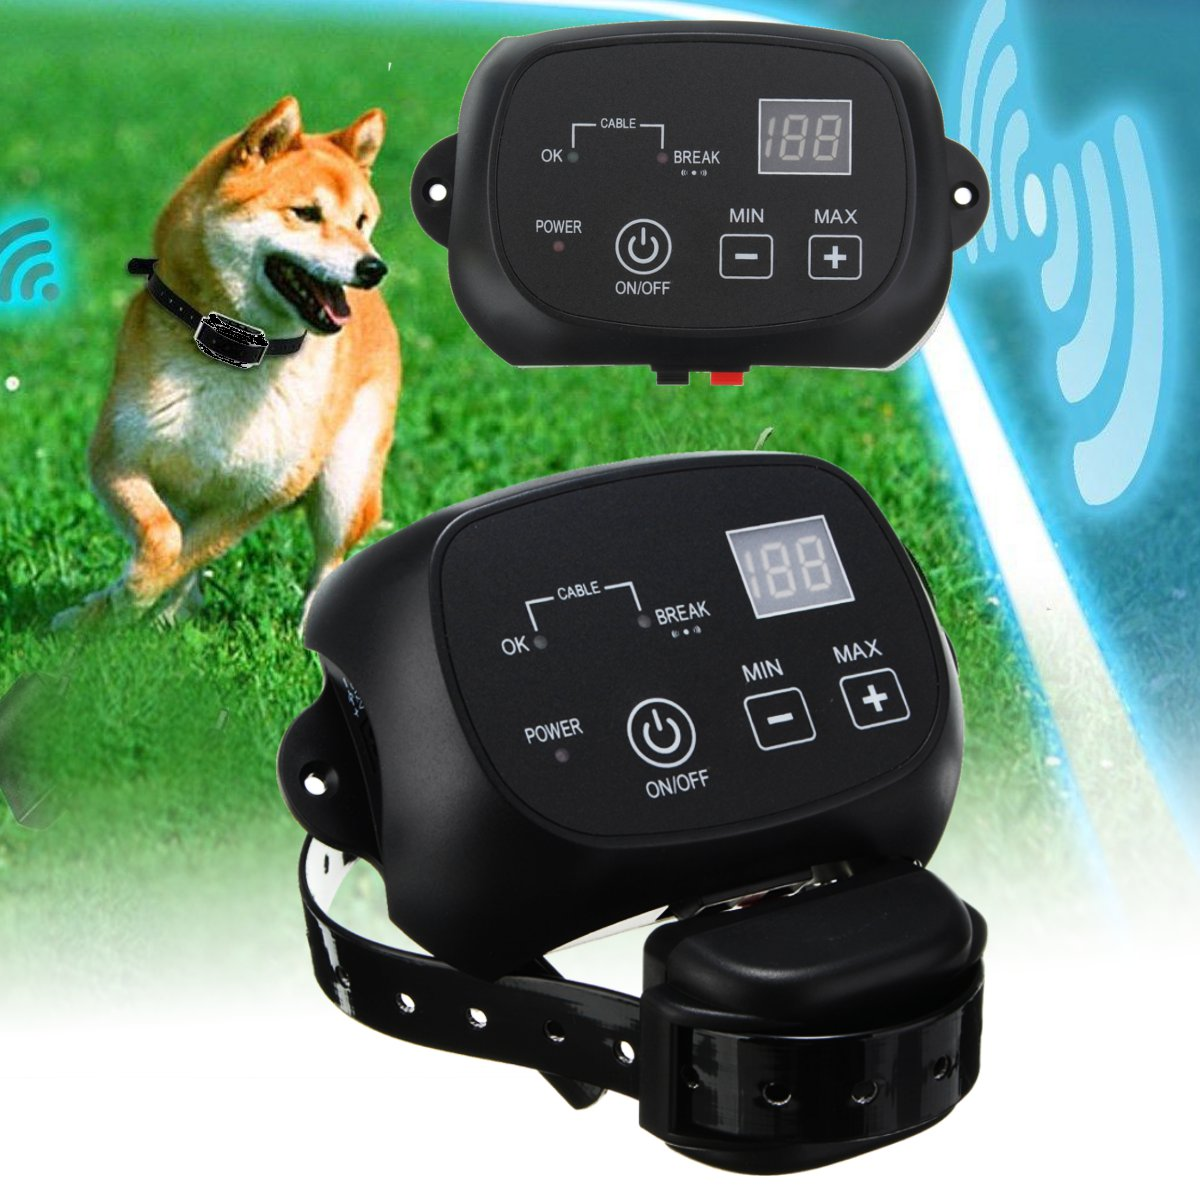 Outdoor Underground Invisible Rechargeable And Waterproof Electronic Pet Dog Fence System Fencing Shock Collar